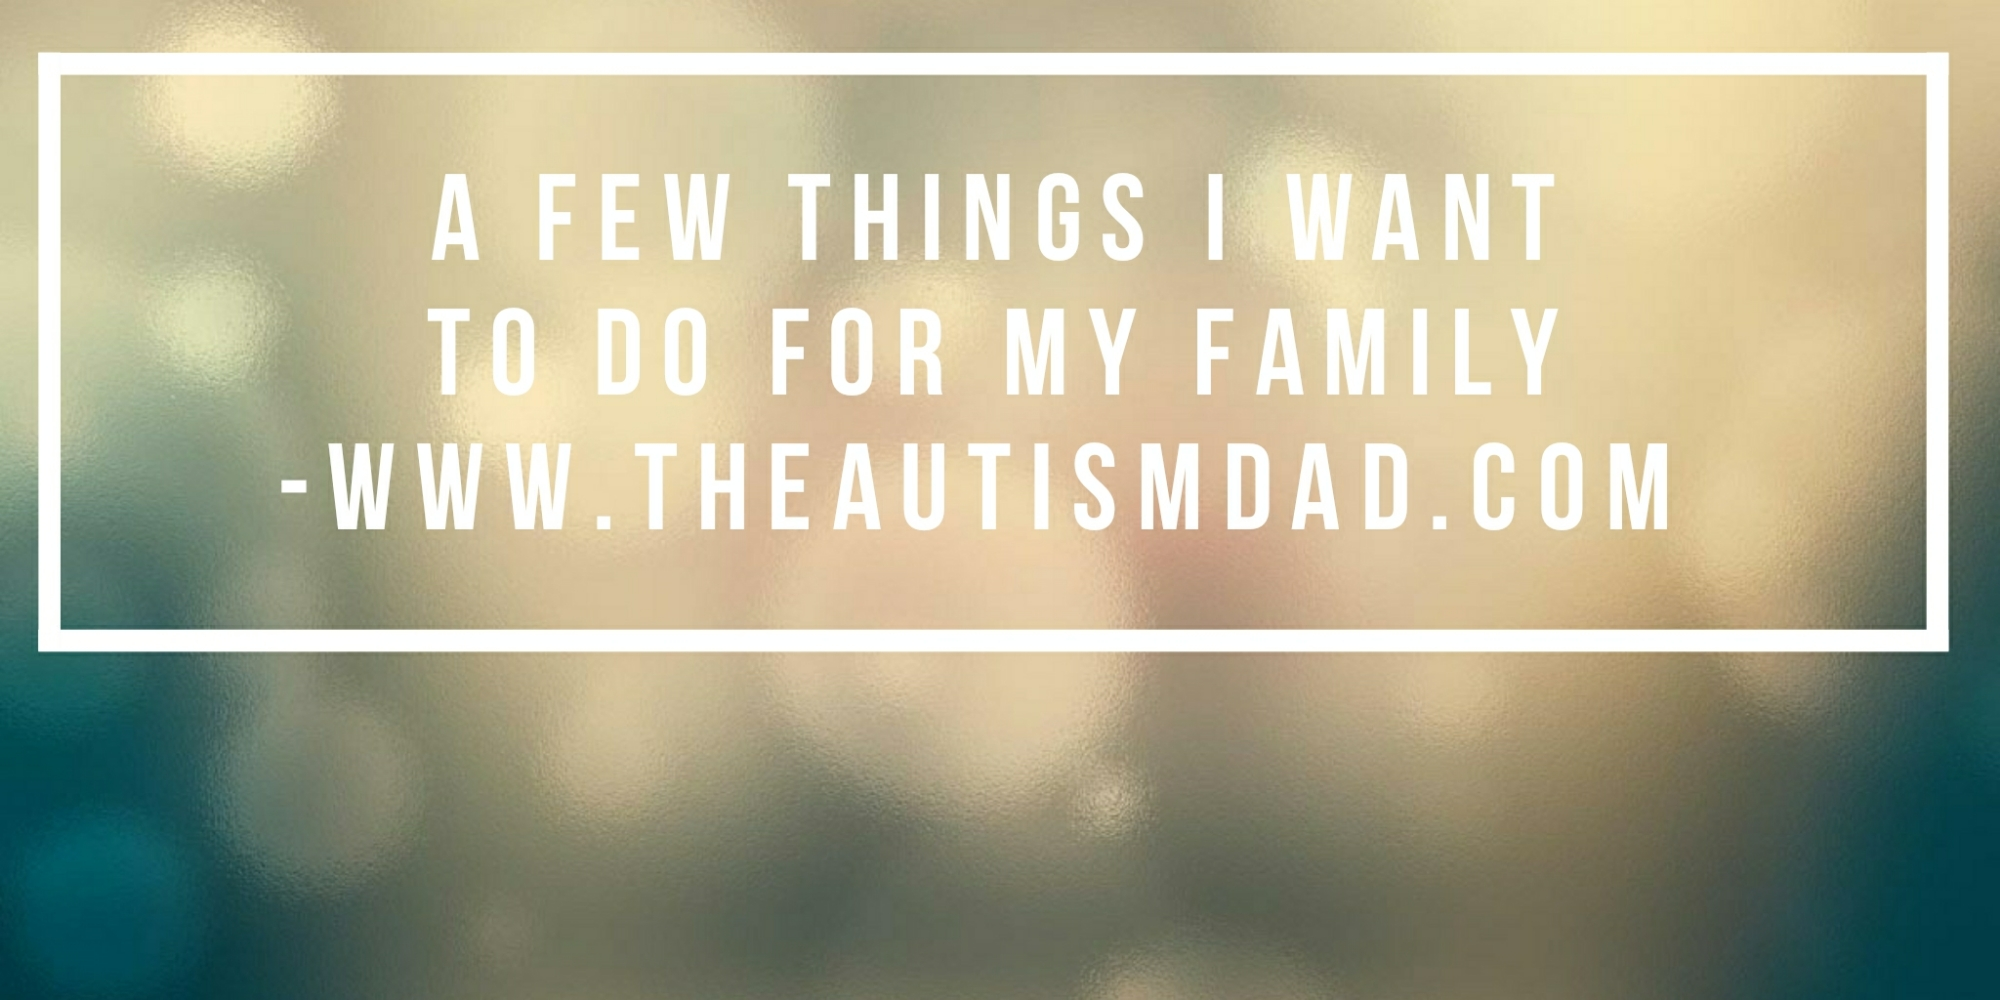 A few things I want to do for my family